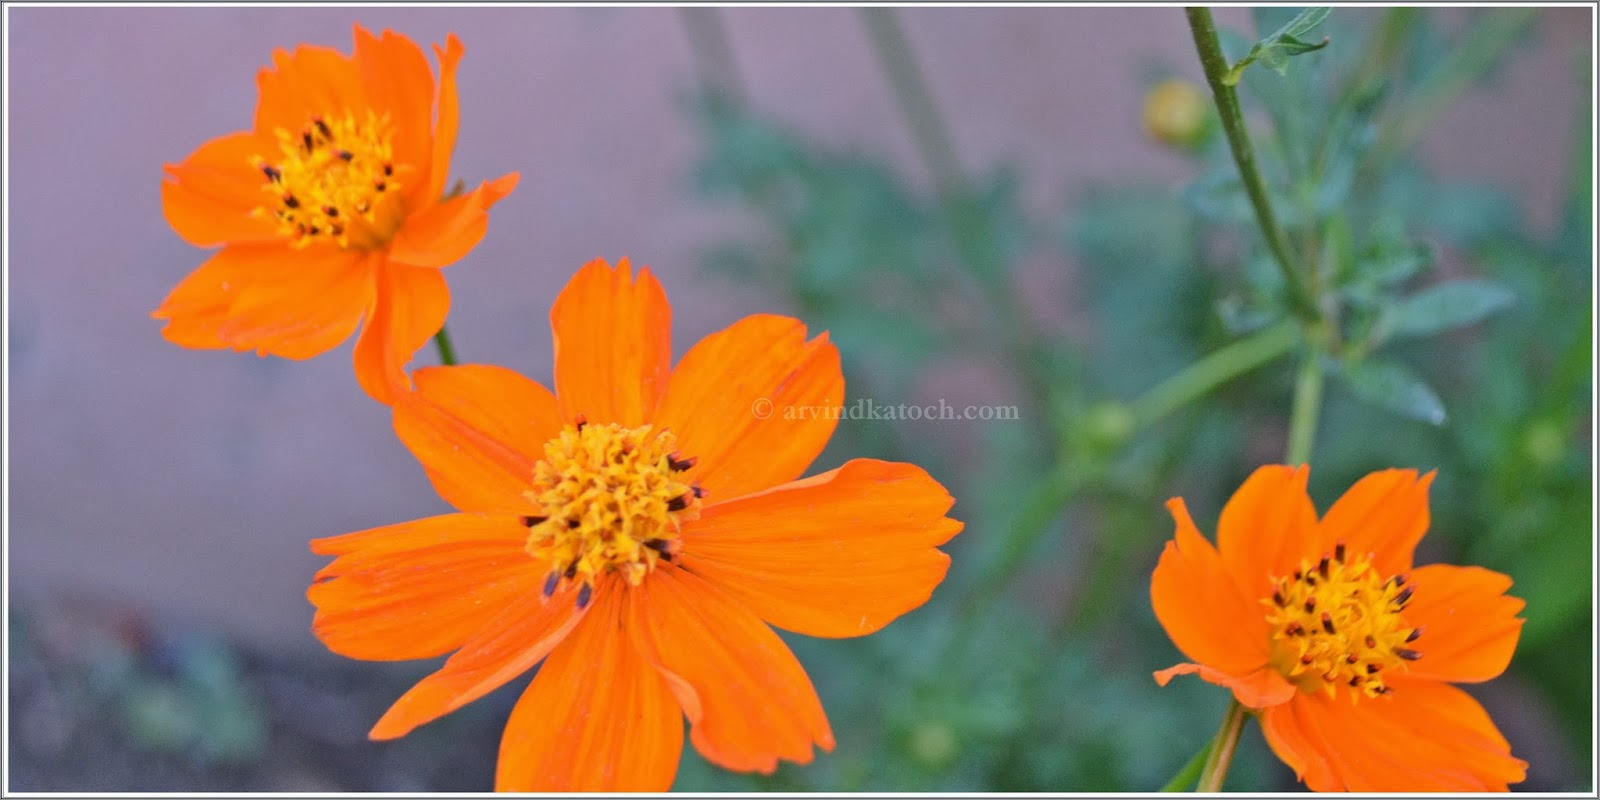 Arvind Katoch Photography Beautiful Seasonal Orange Flowers With